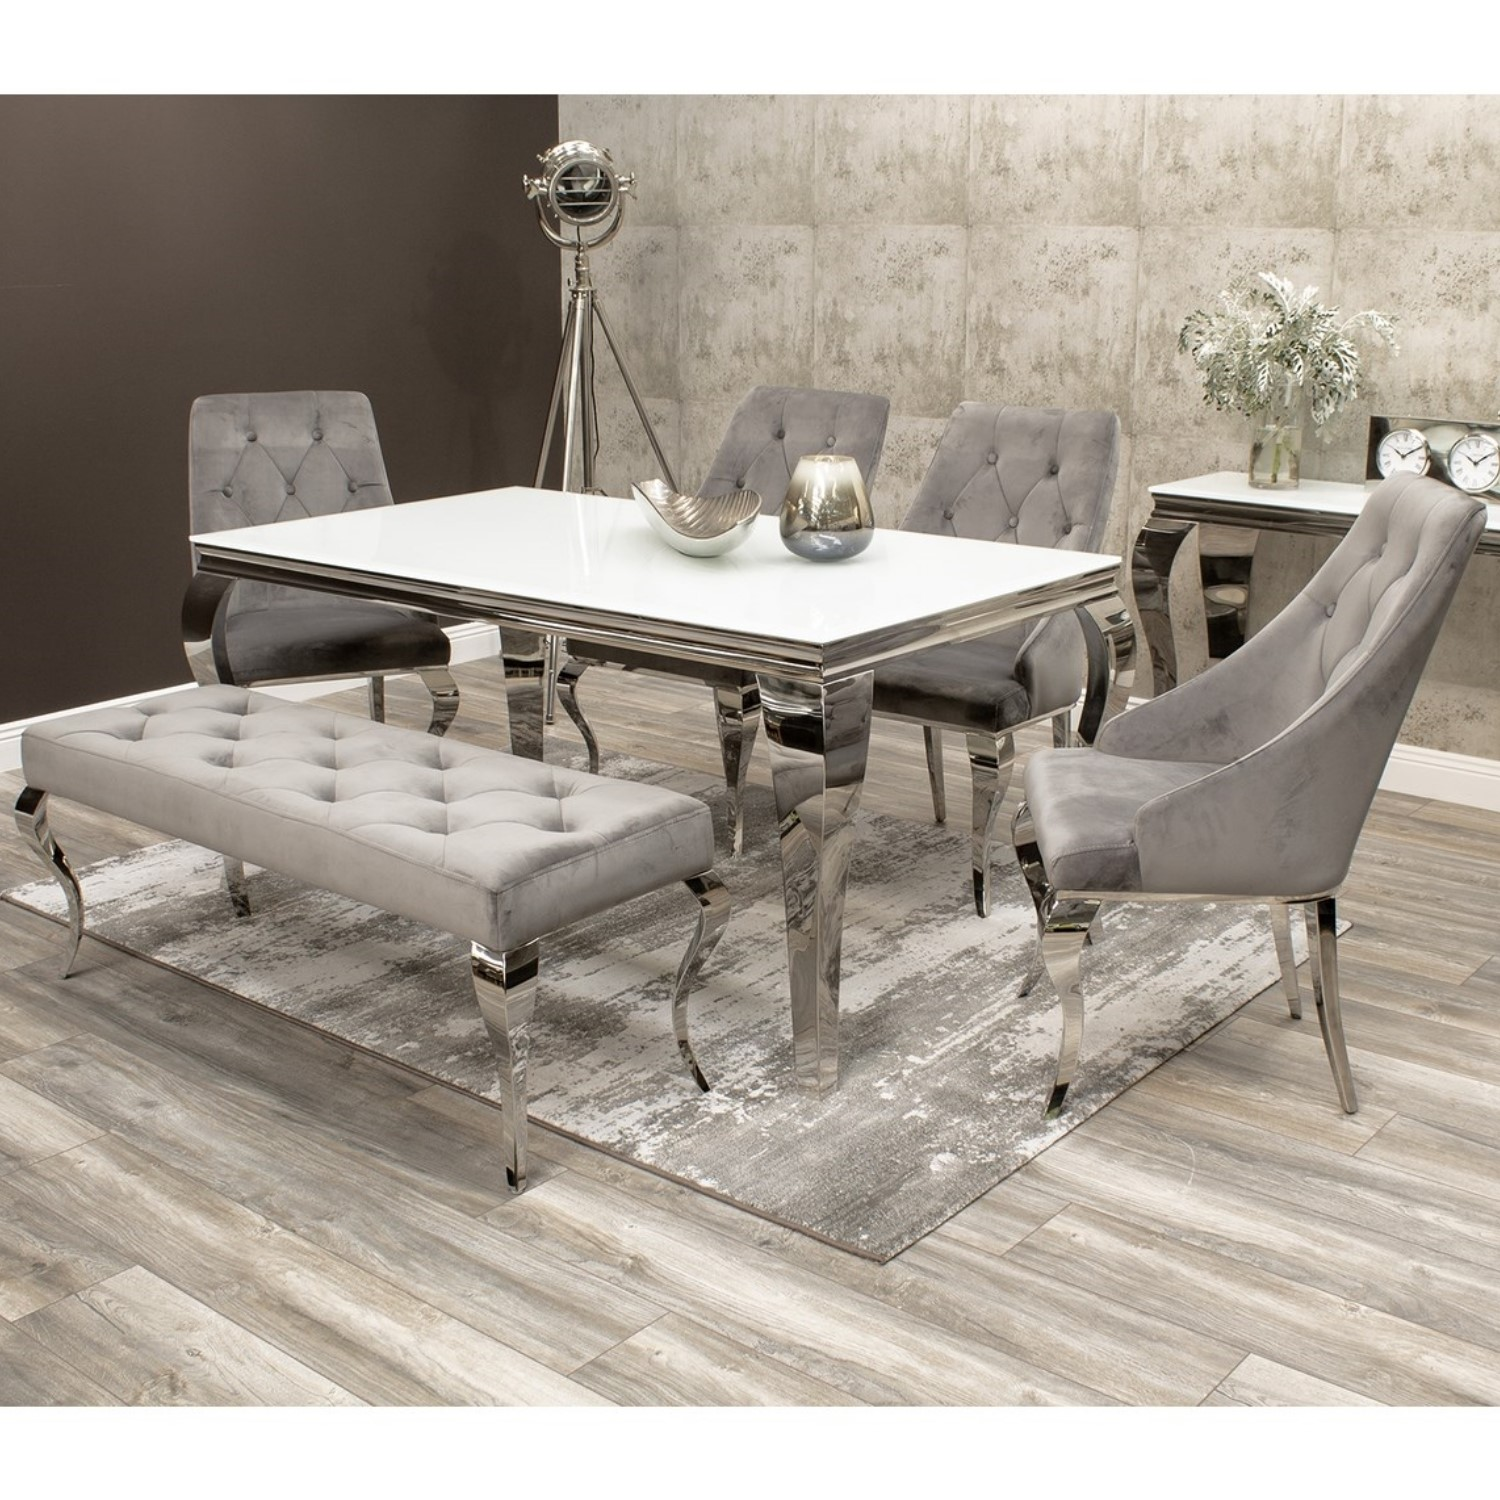 Buyitdirect.ie & Louis White Dining Table 160cm with 4 Grey Velvet Chairs \u0026 1 Bench - Mirrored Legs